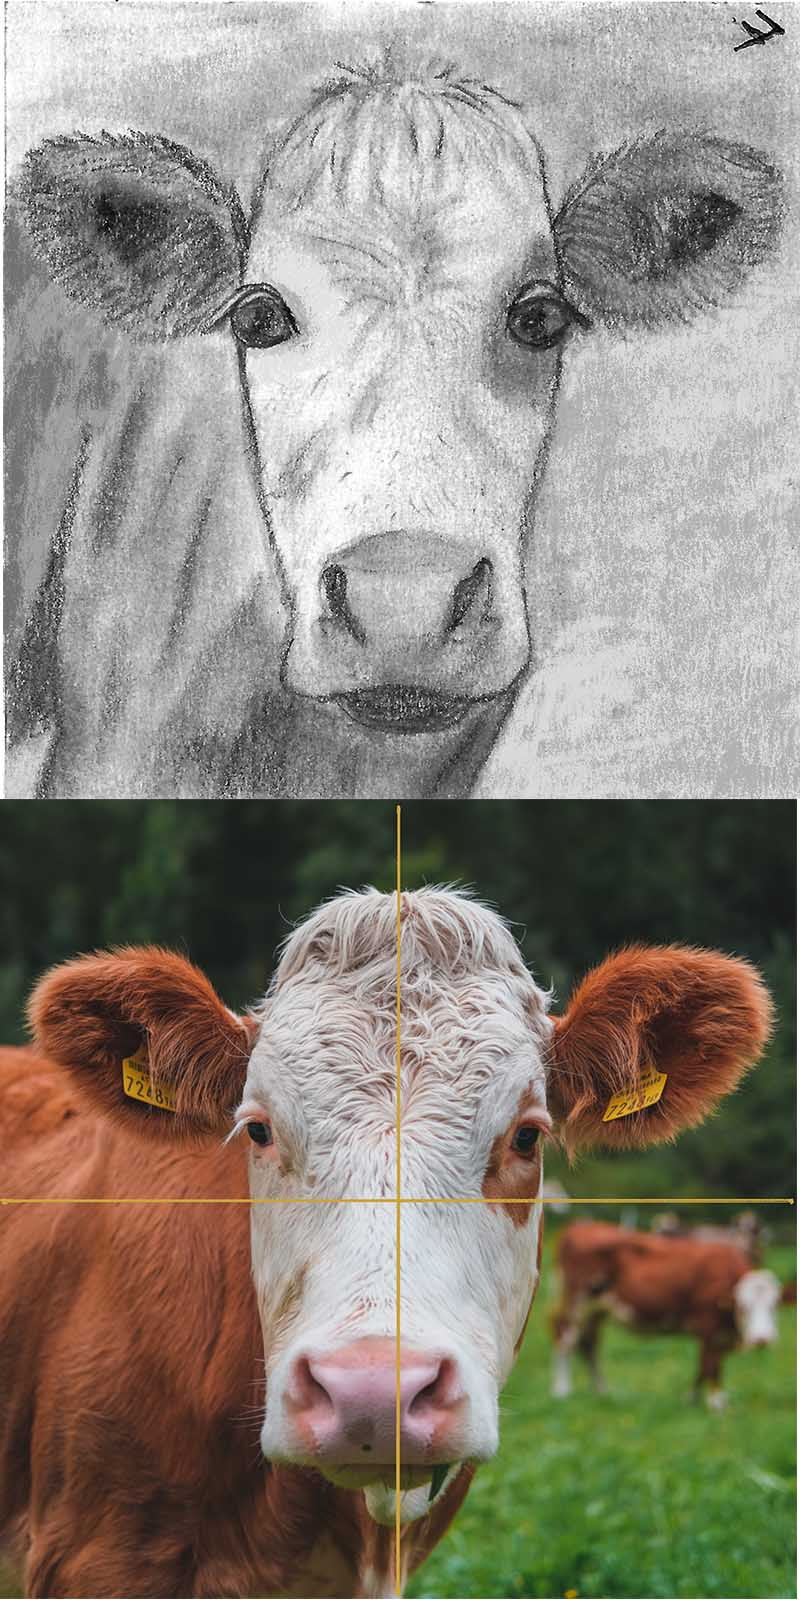 For #the100dayproject https://the100dayproject.org/  The cow reference photo is by Thomas Oldenburger on www.unsplash.comI plan to draw a picture of an animal each day.